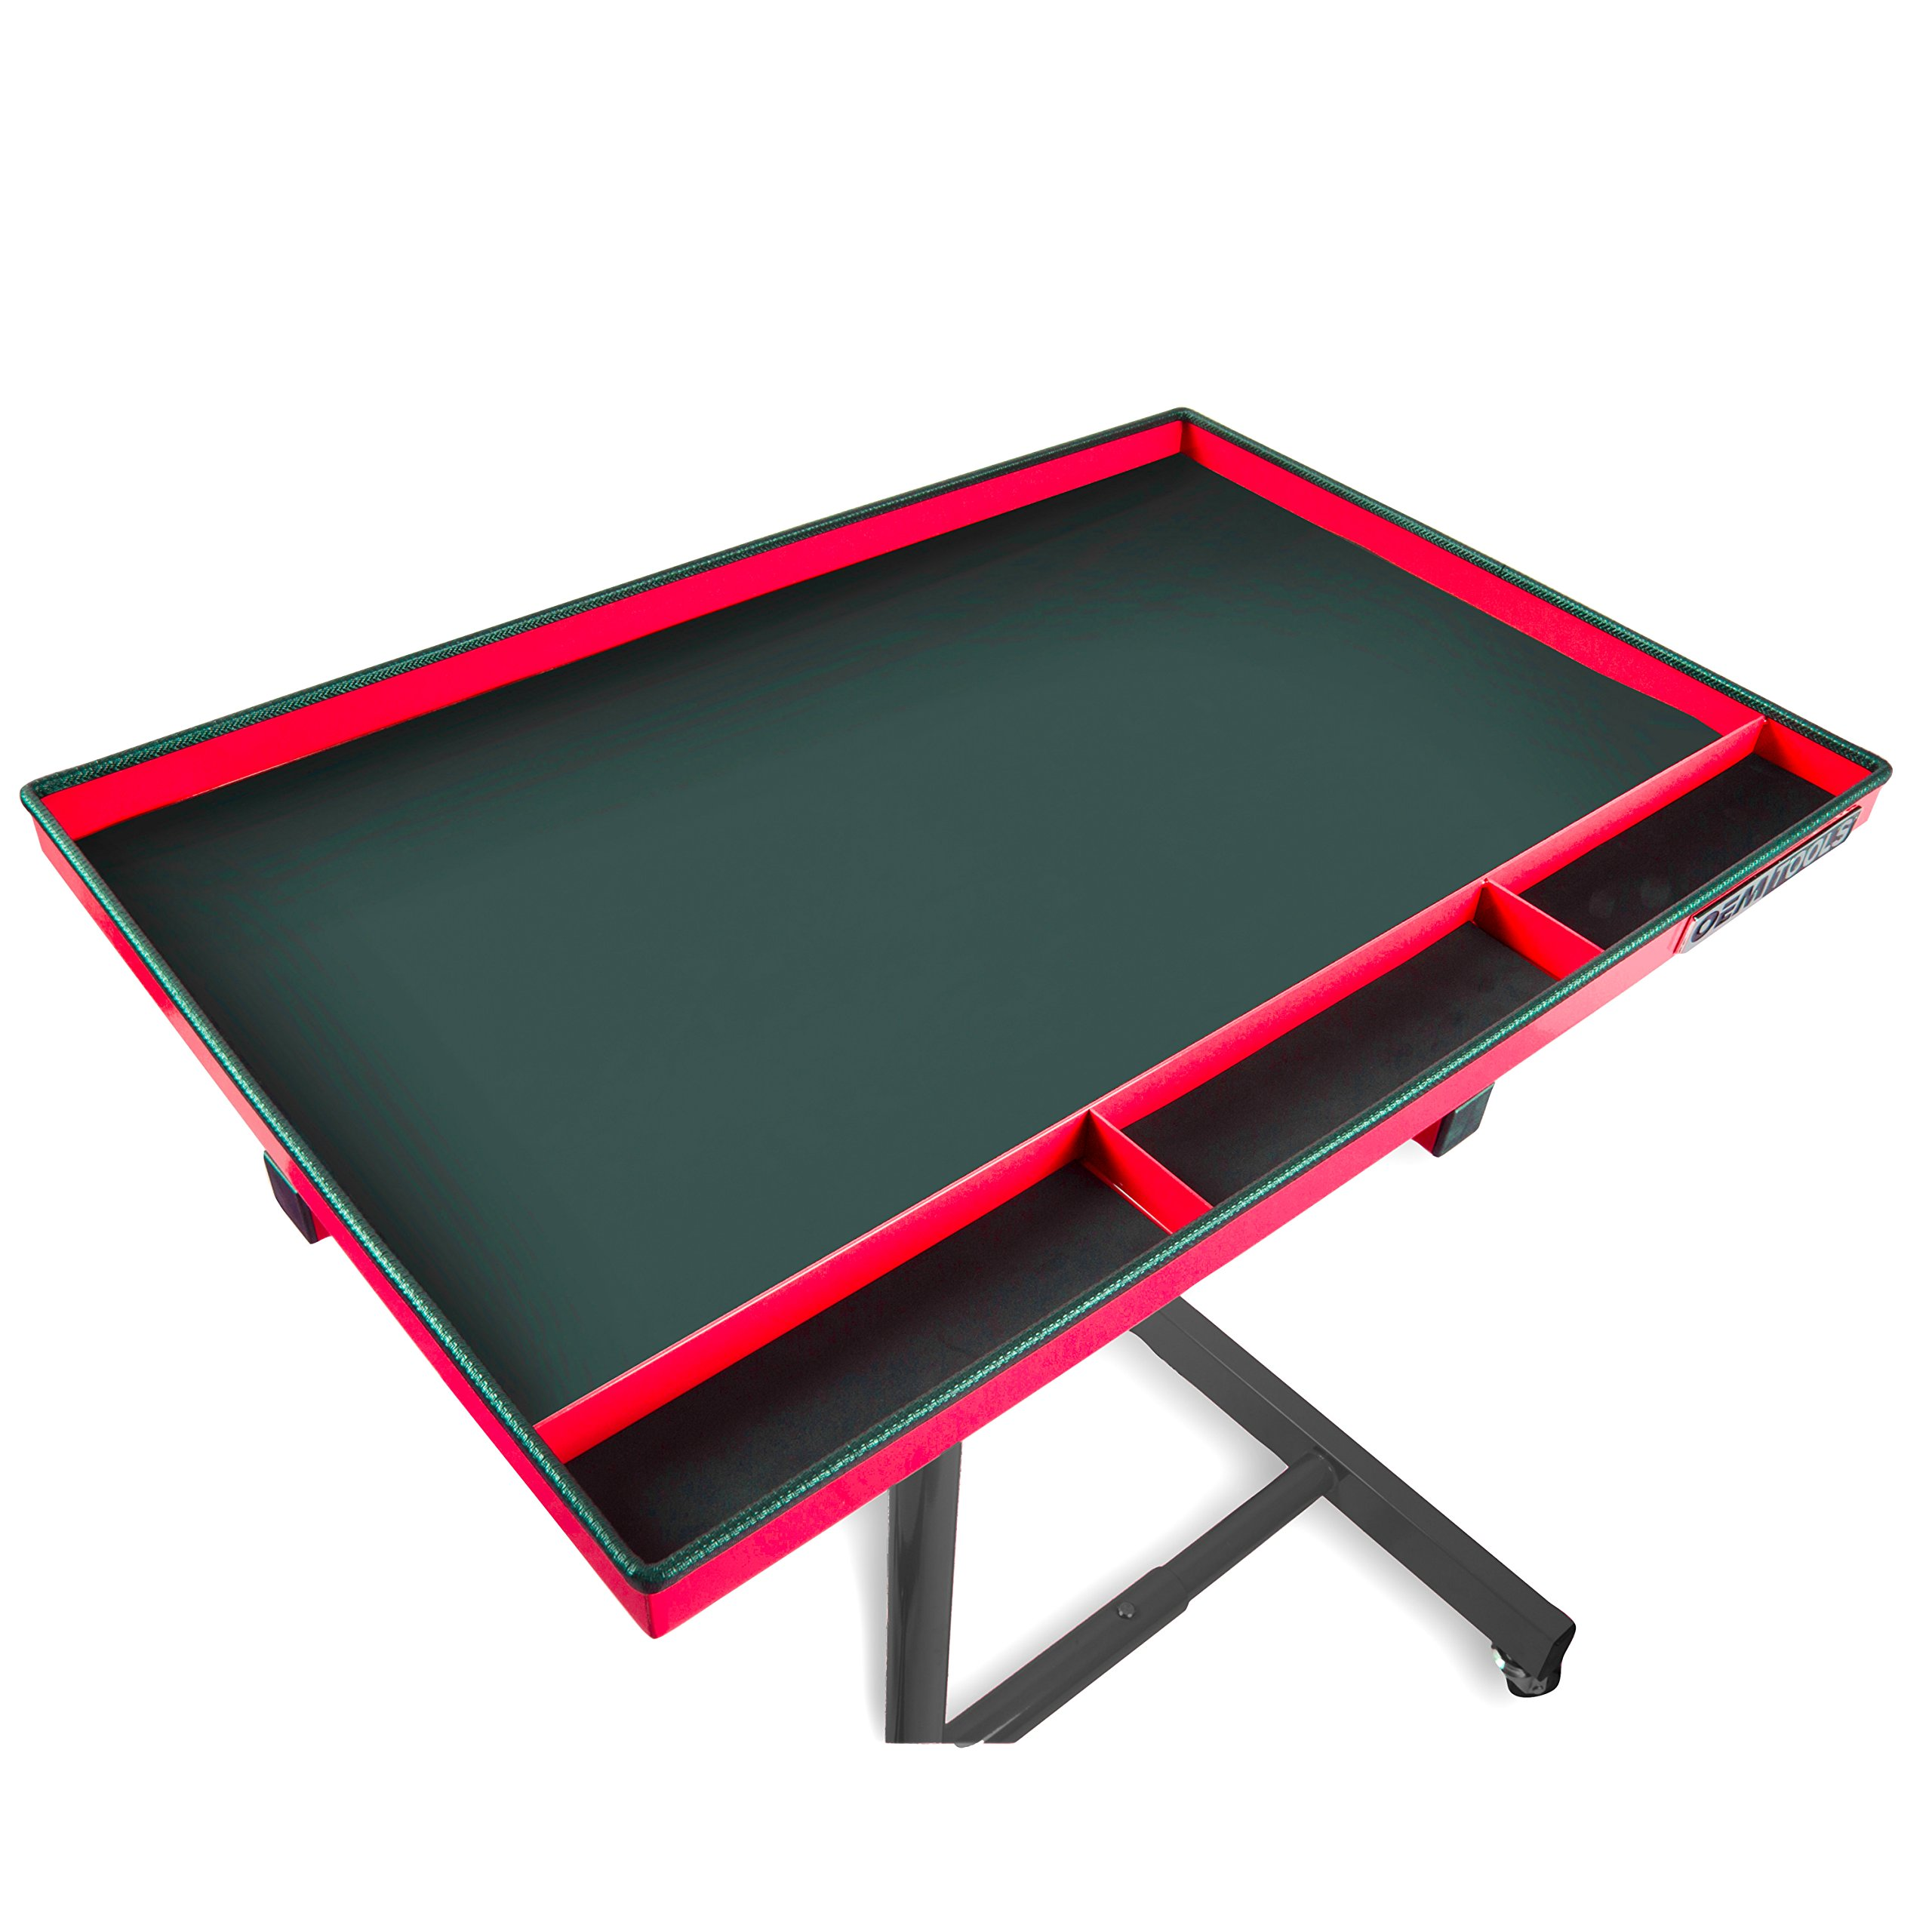 OEMTOOLS 24935 OEMTOOLS 24935 Red and Black 29'' Portable Tear Down Tray by OEMTOOLS (Image #3)